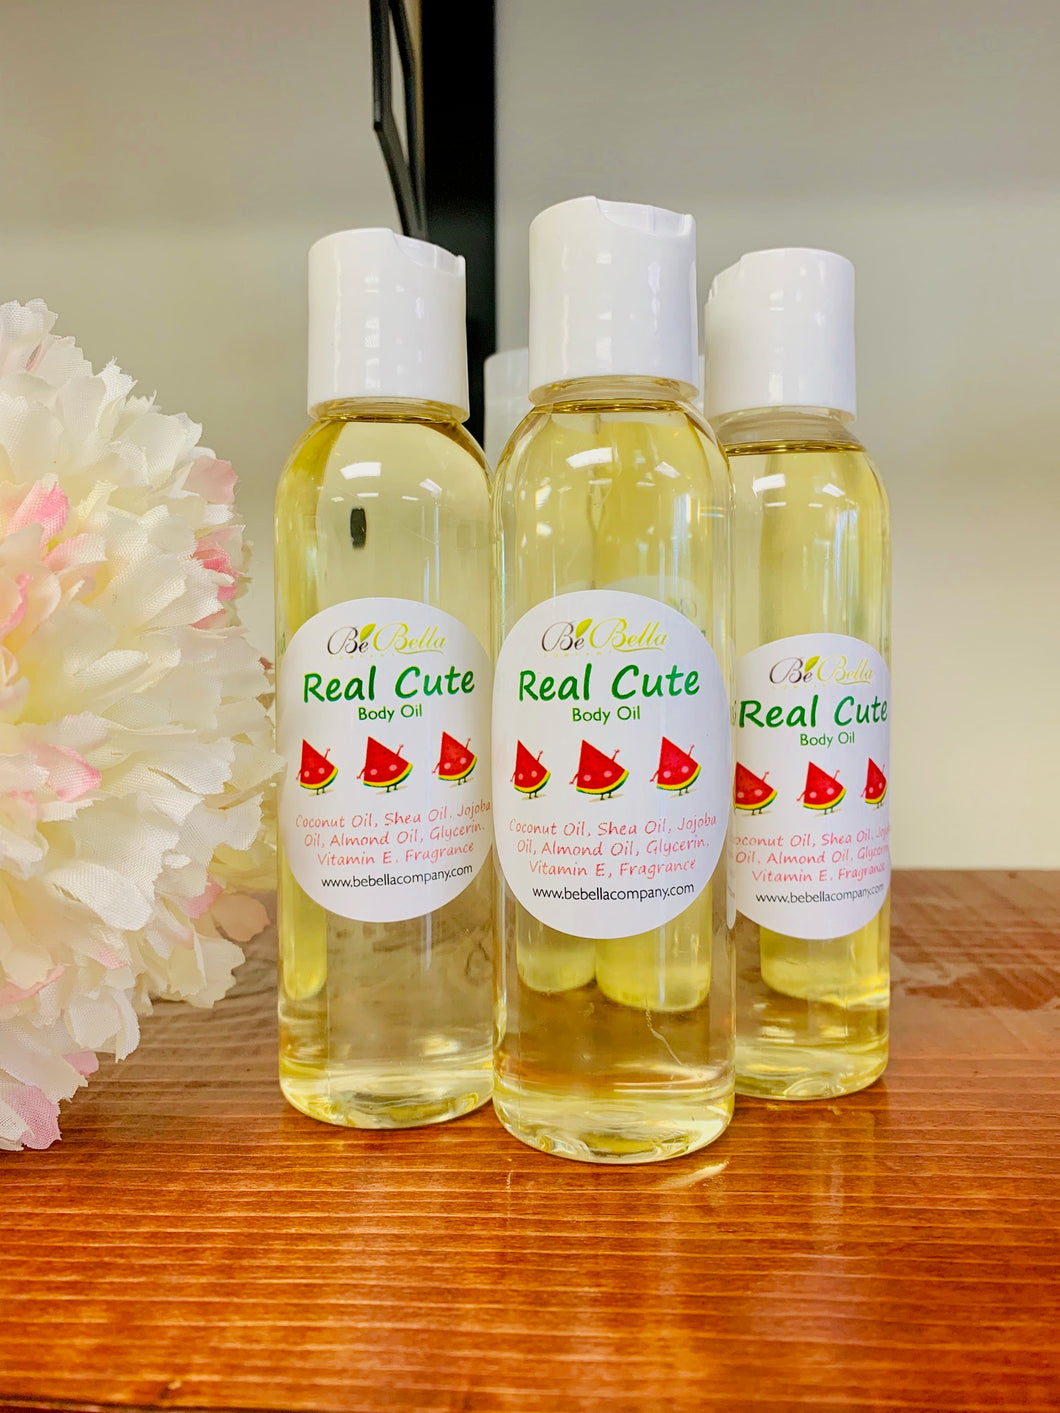 Real Cute Body Oil